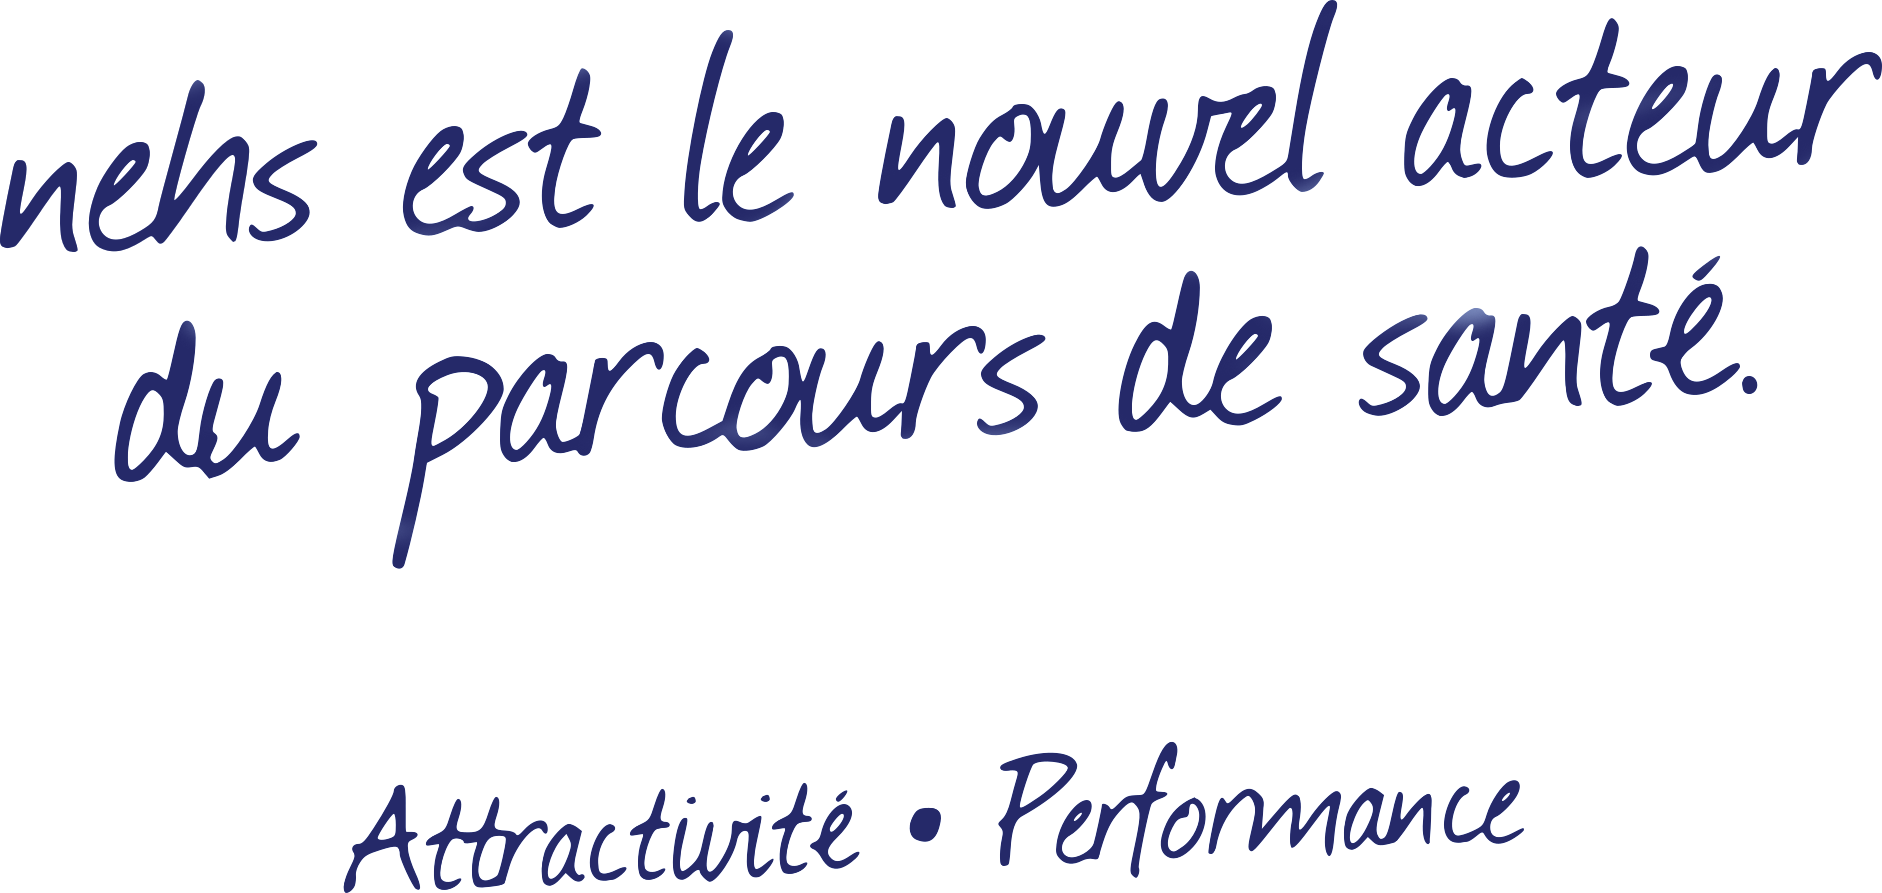 nehs attractivité performance